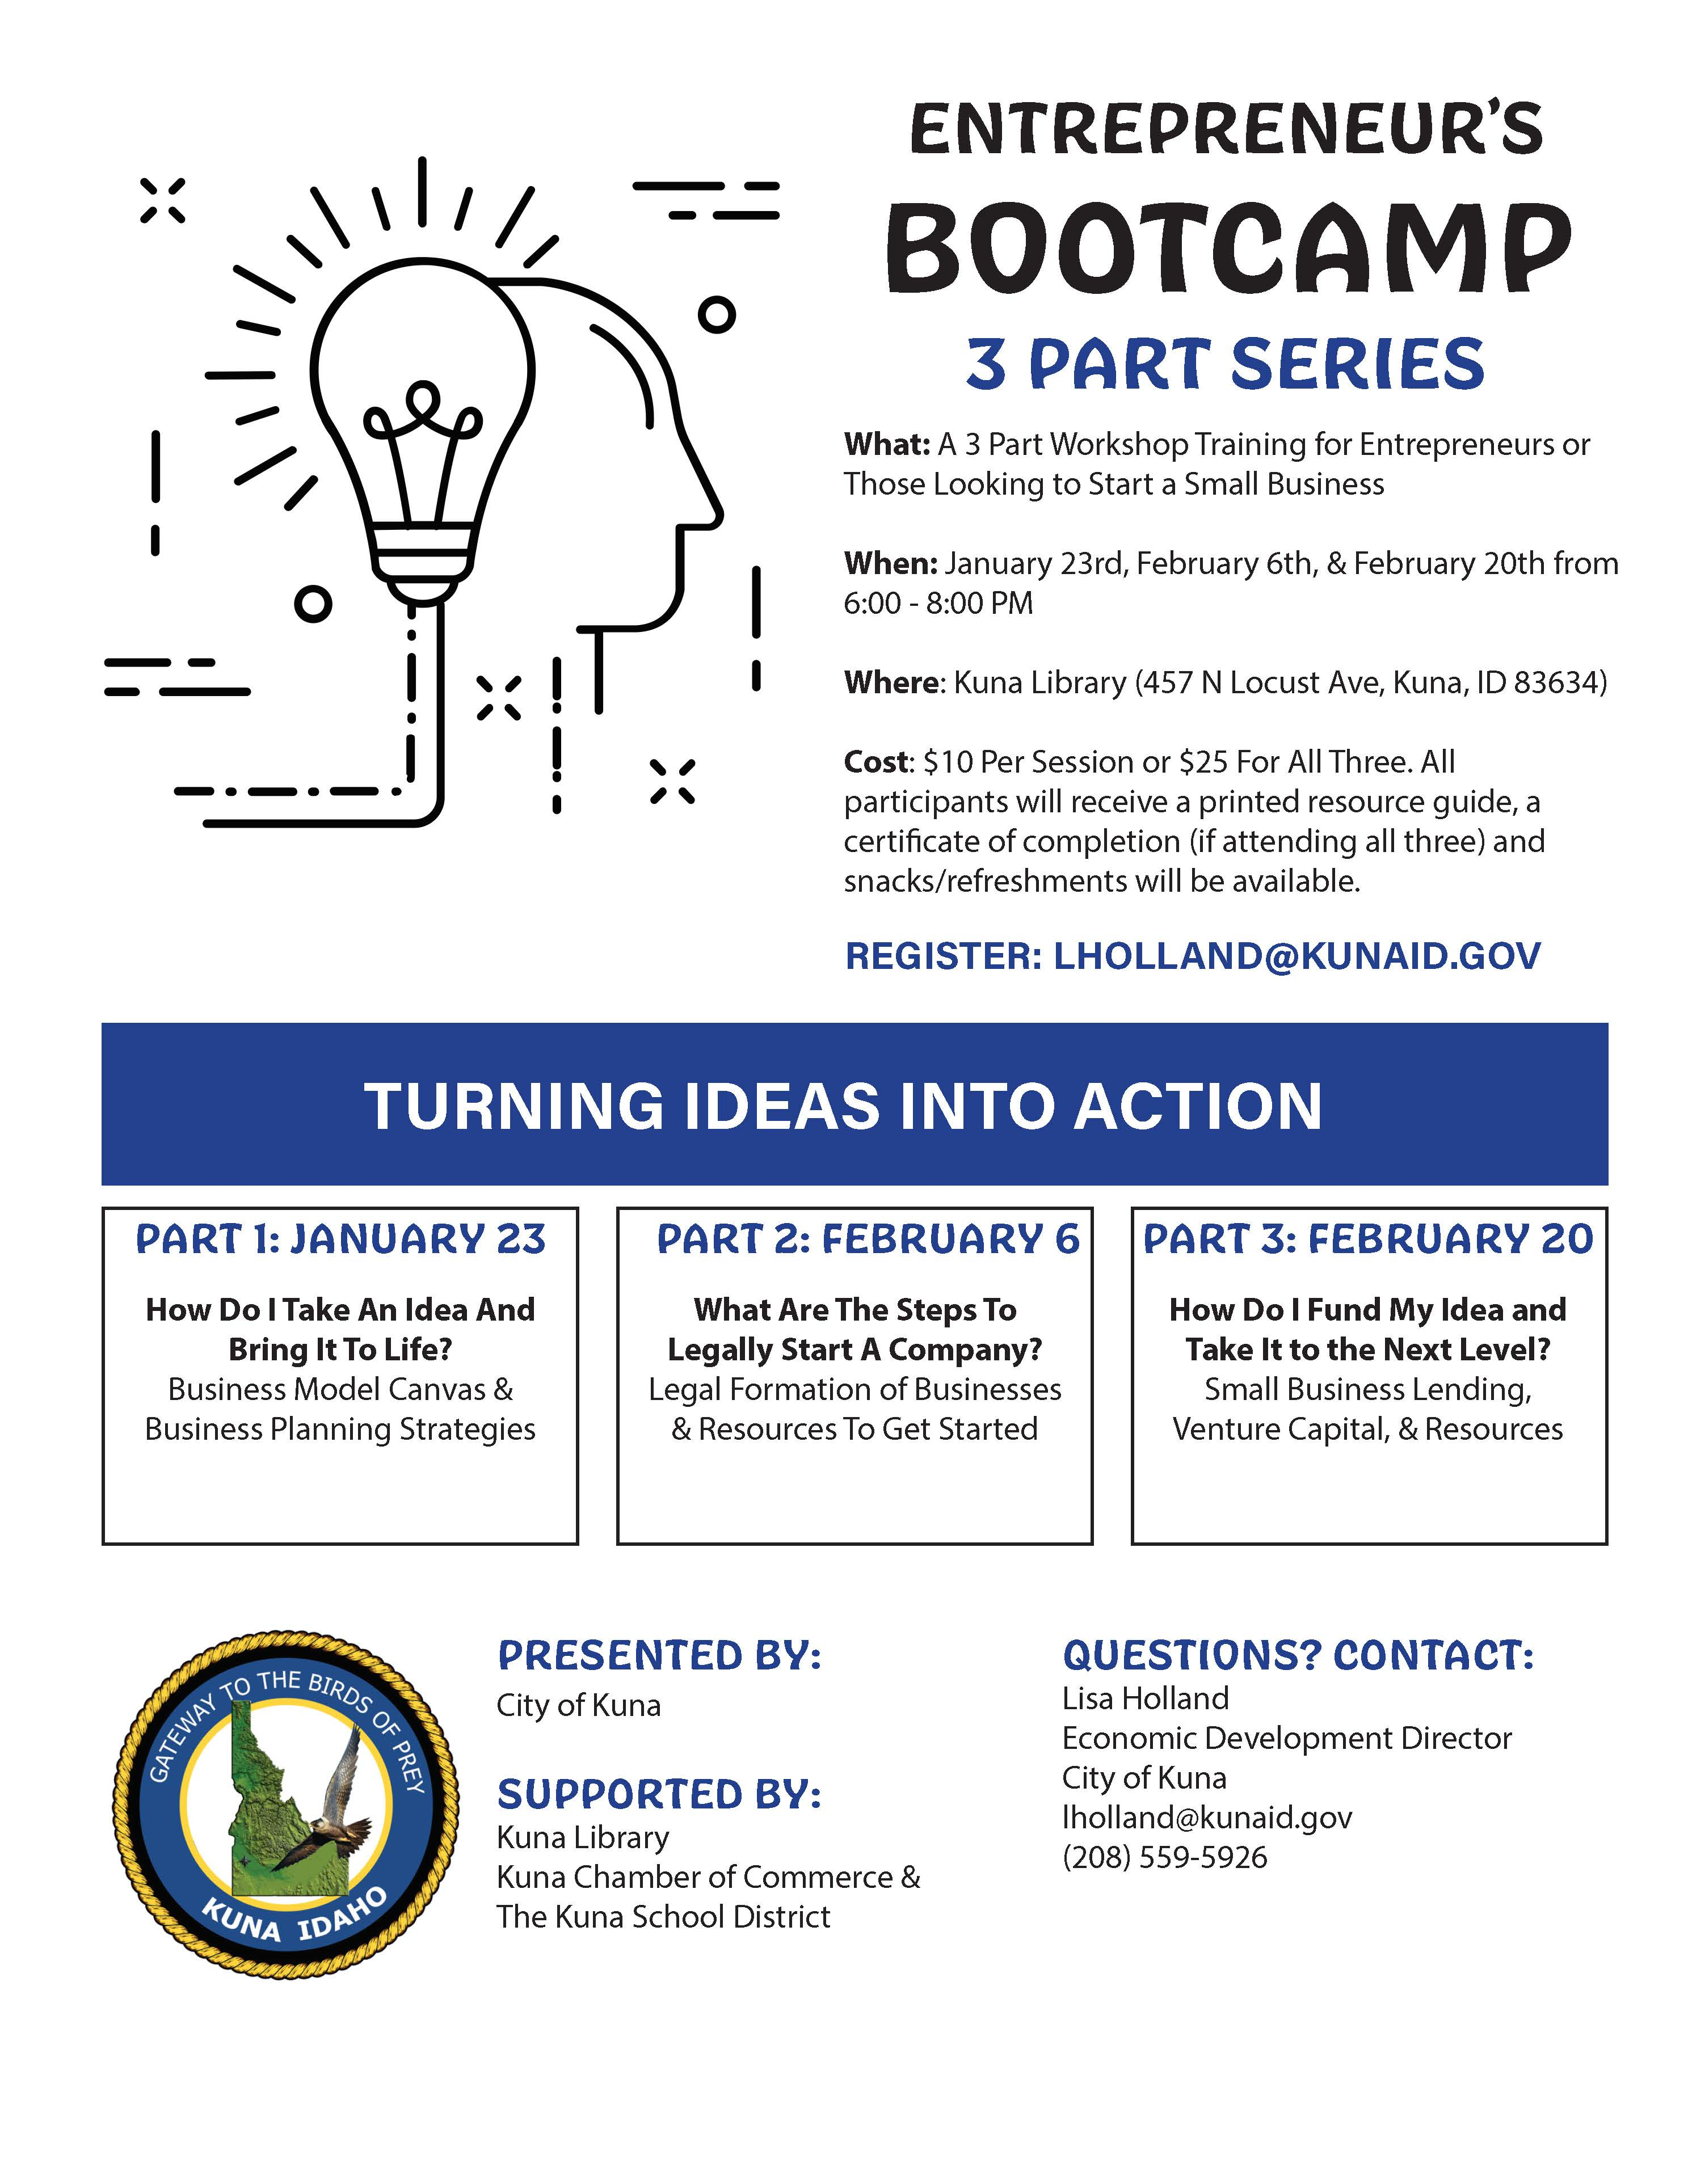 Entrepreneurs Bootcamp Flyer.jpg